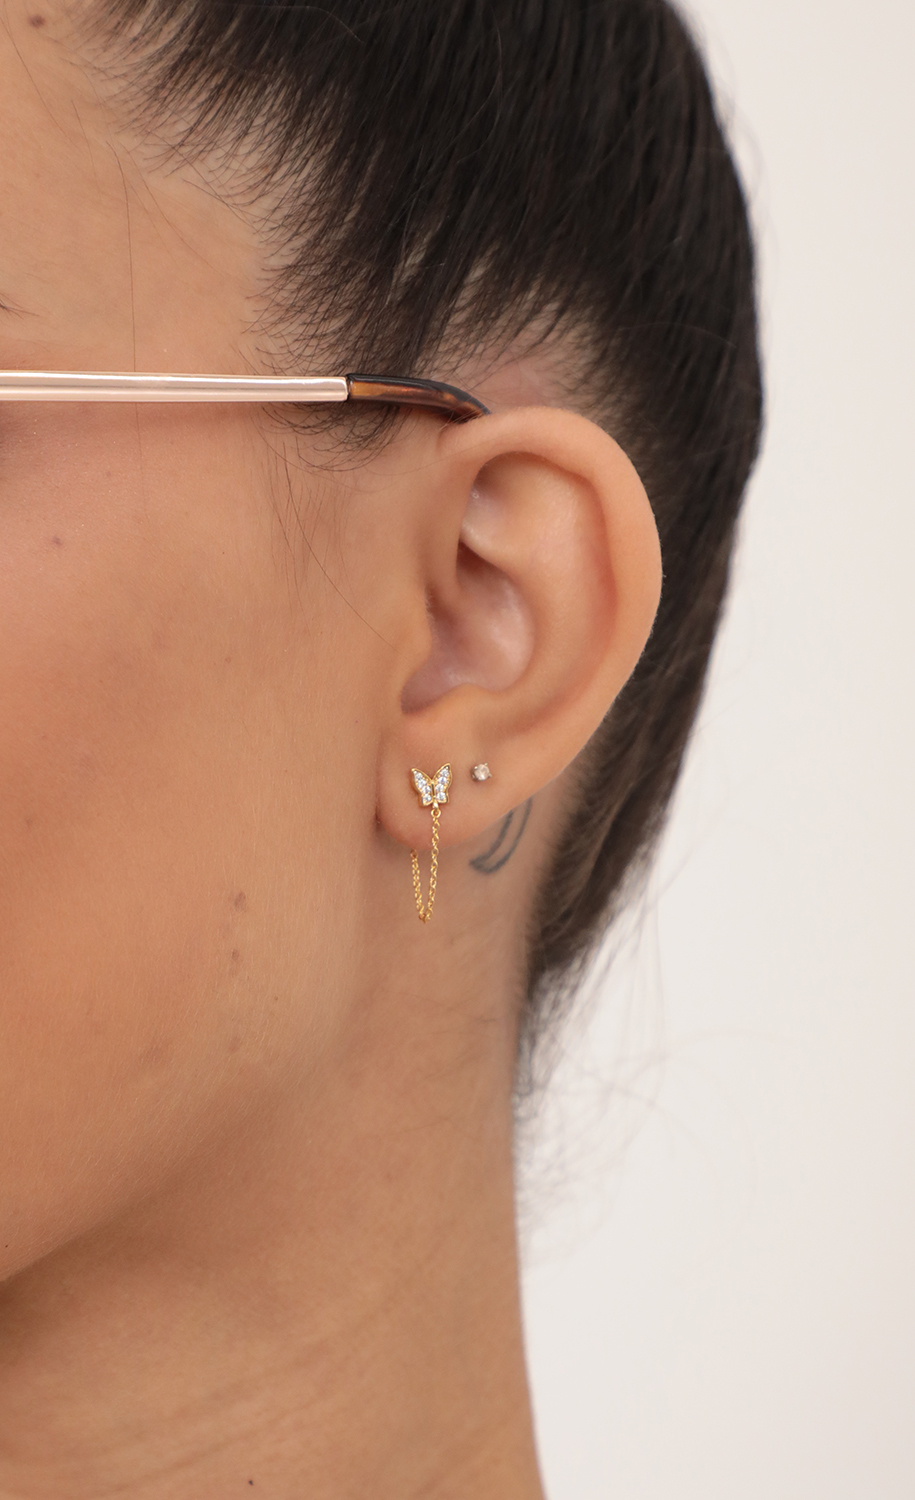 Pave Butterfly Chain Stud Earring in Gold